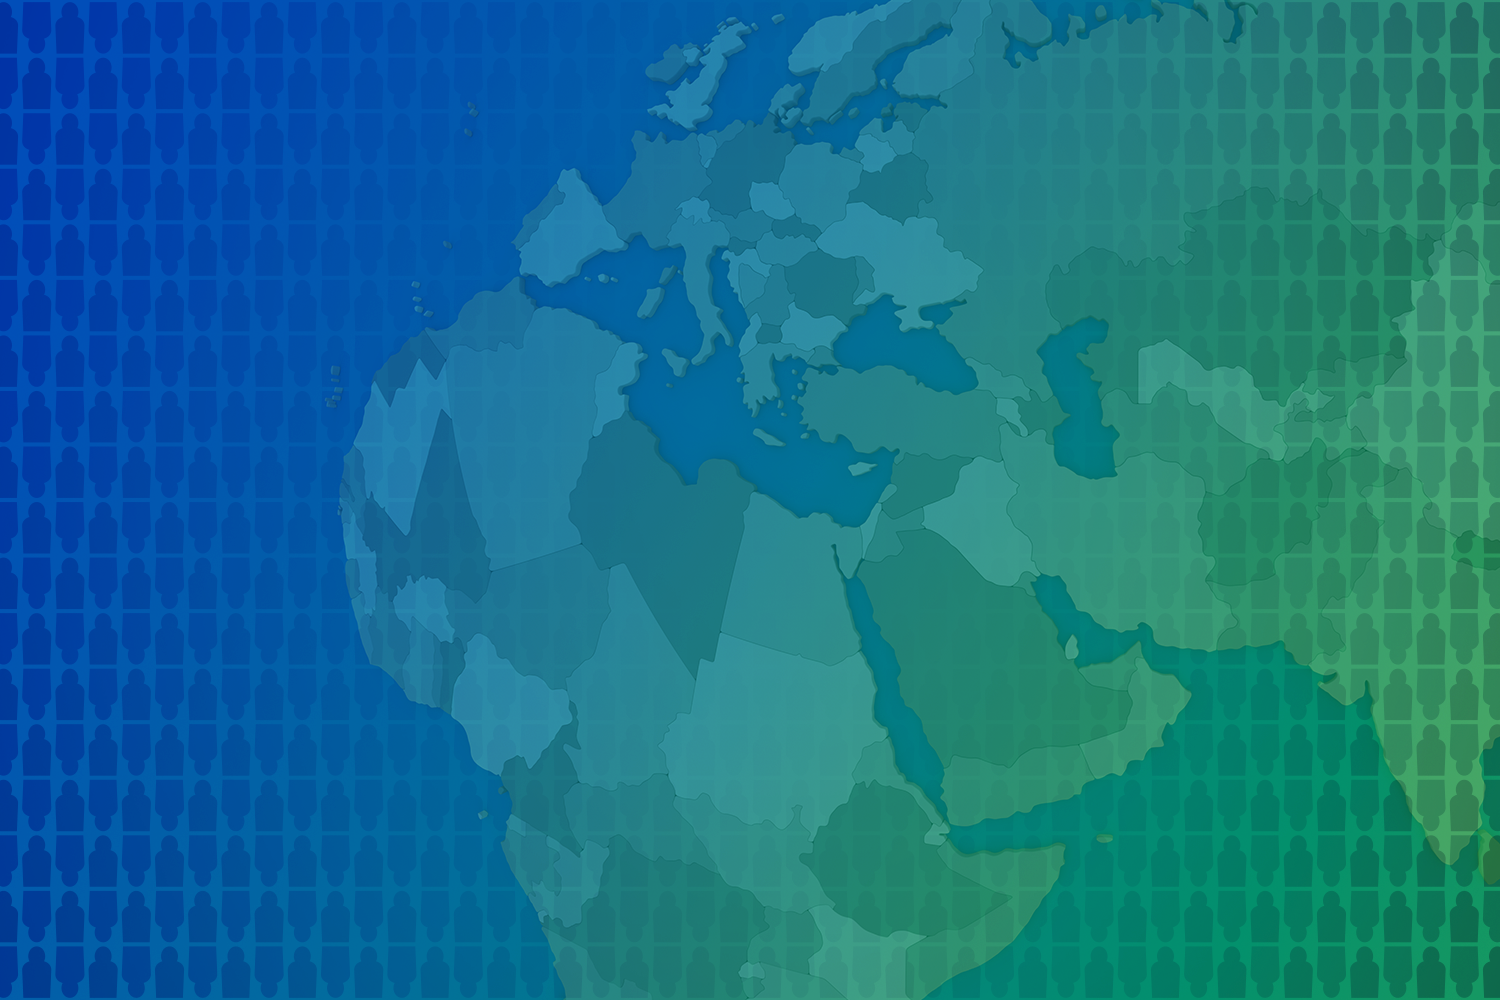 illustration of EMEA map overlaid on blueish-green gradient background